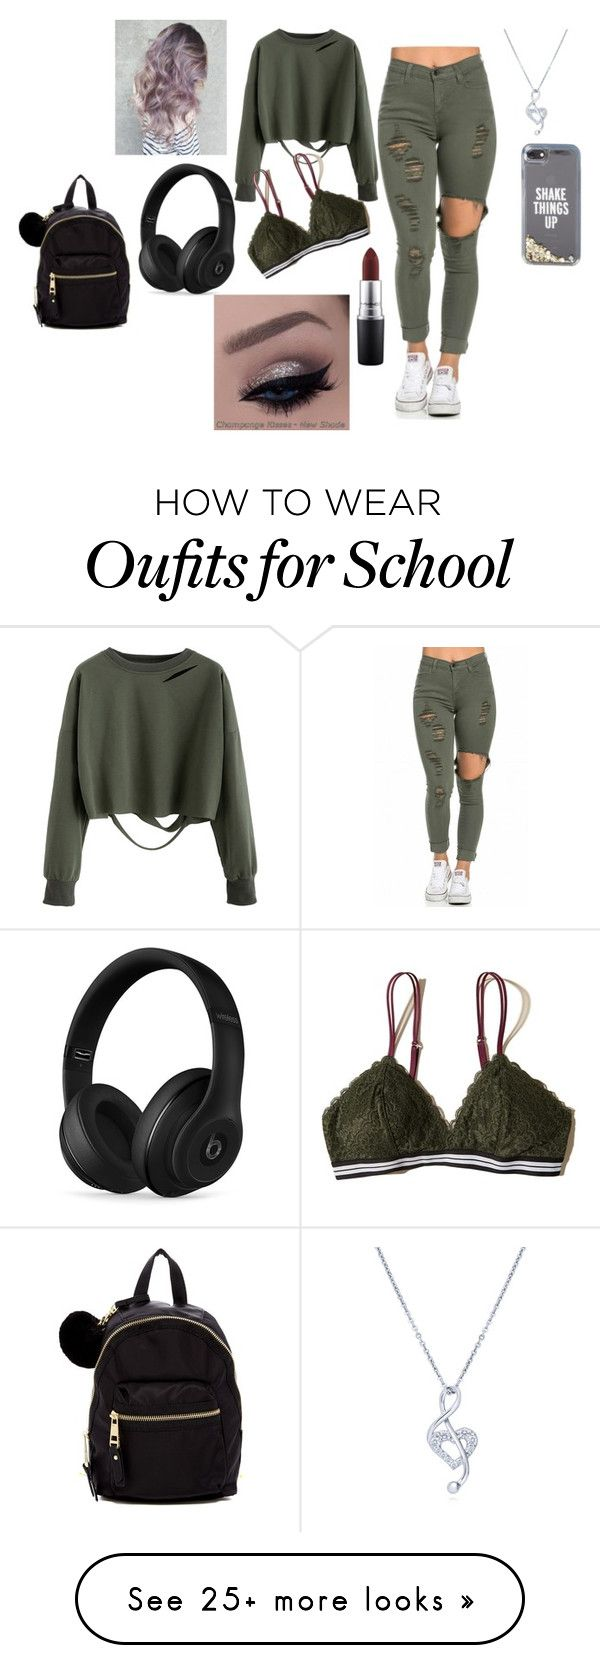 """""""Simple outfit for school"""" by alondra-lemus909 on Polyvore featuring Hollister Co., Beats by Dr. Dre, Madden Girl, BERRICLE, Kate Spade and MAC Cosmetics"""